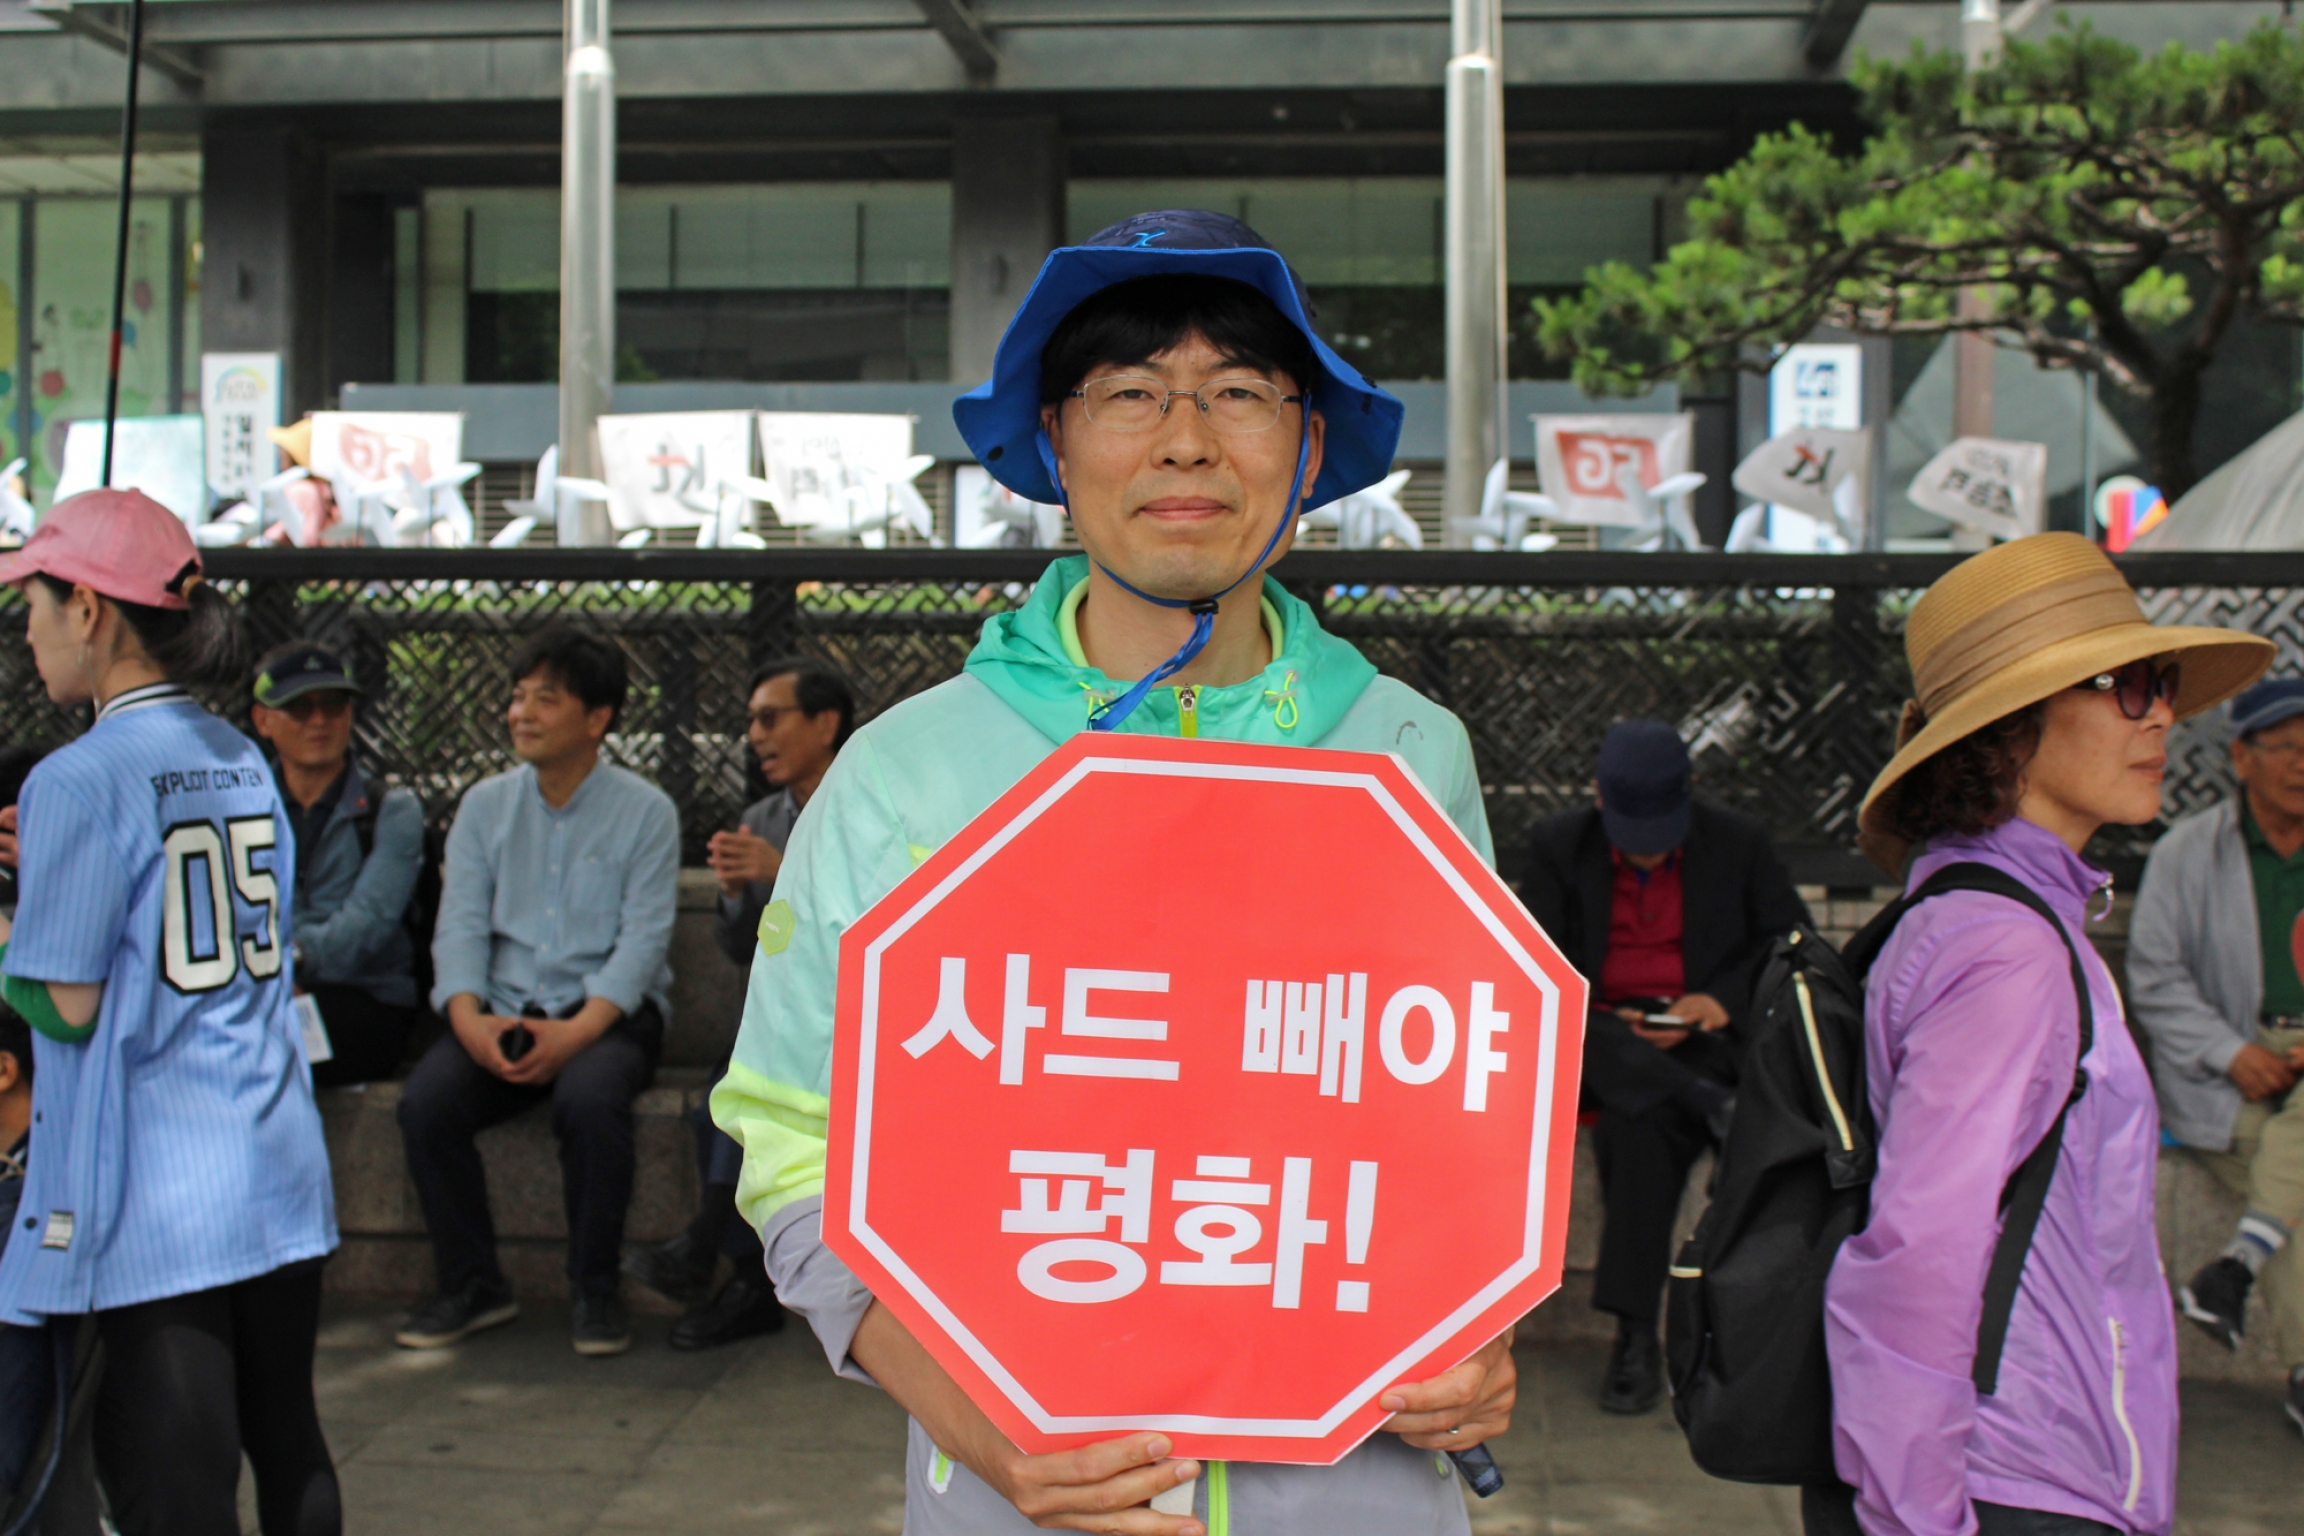 A man holds red protest sign encouraging engagement between US and NK.